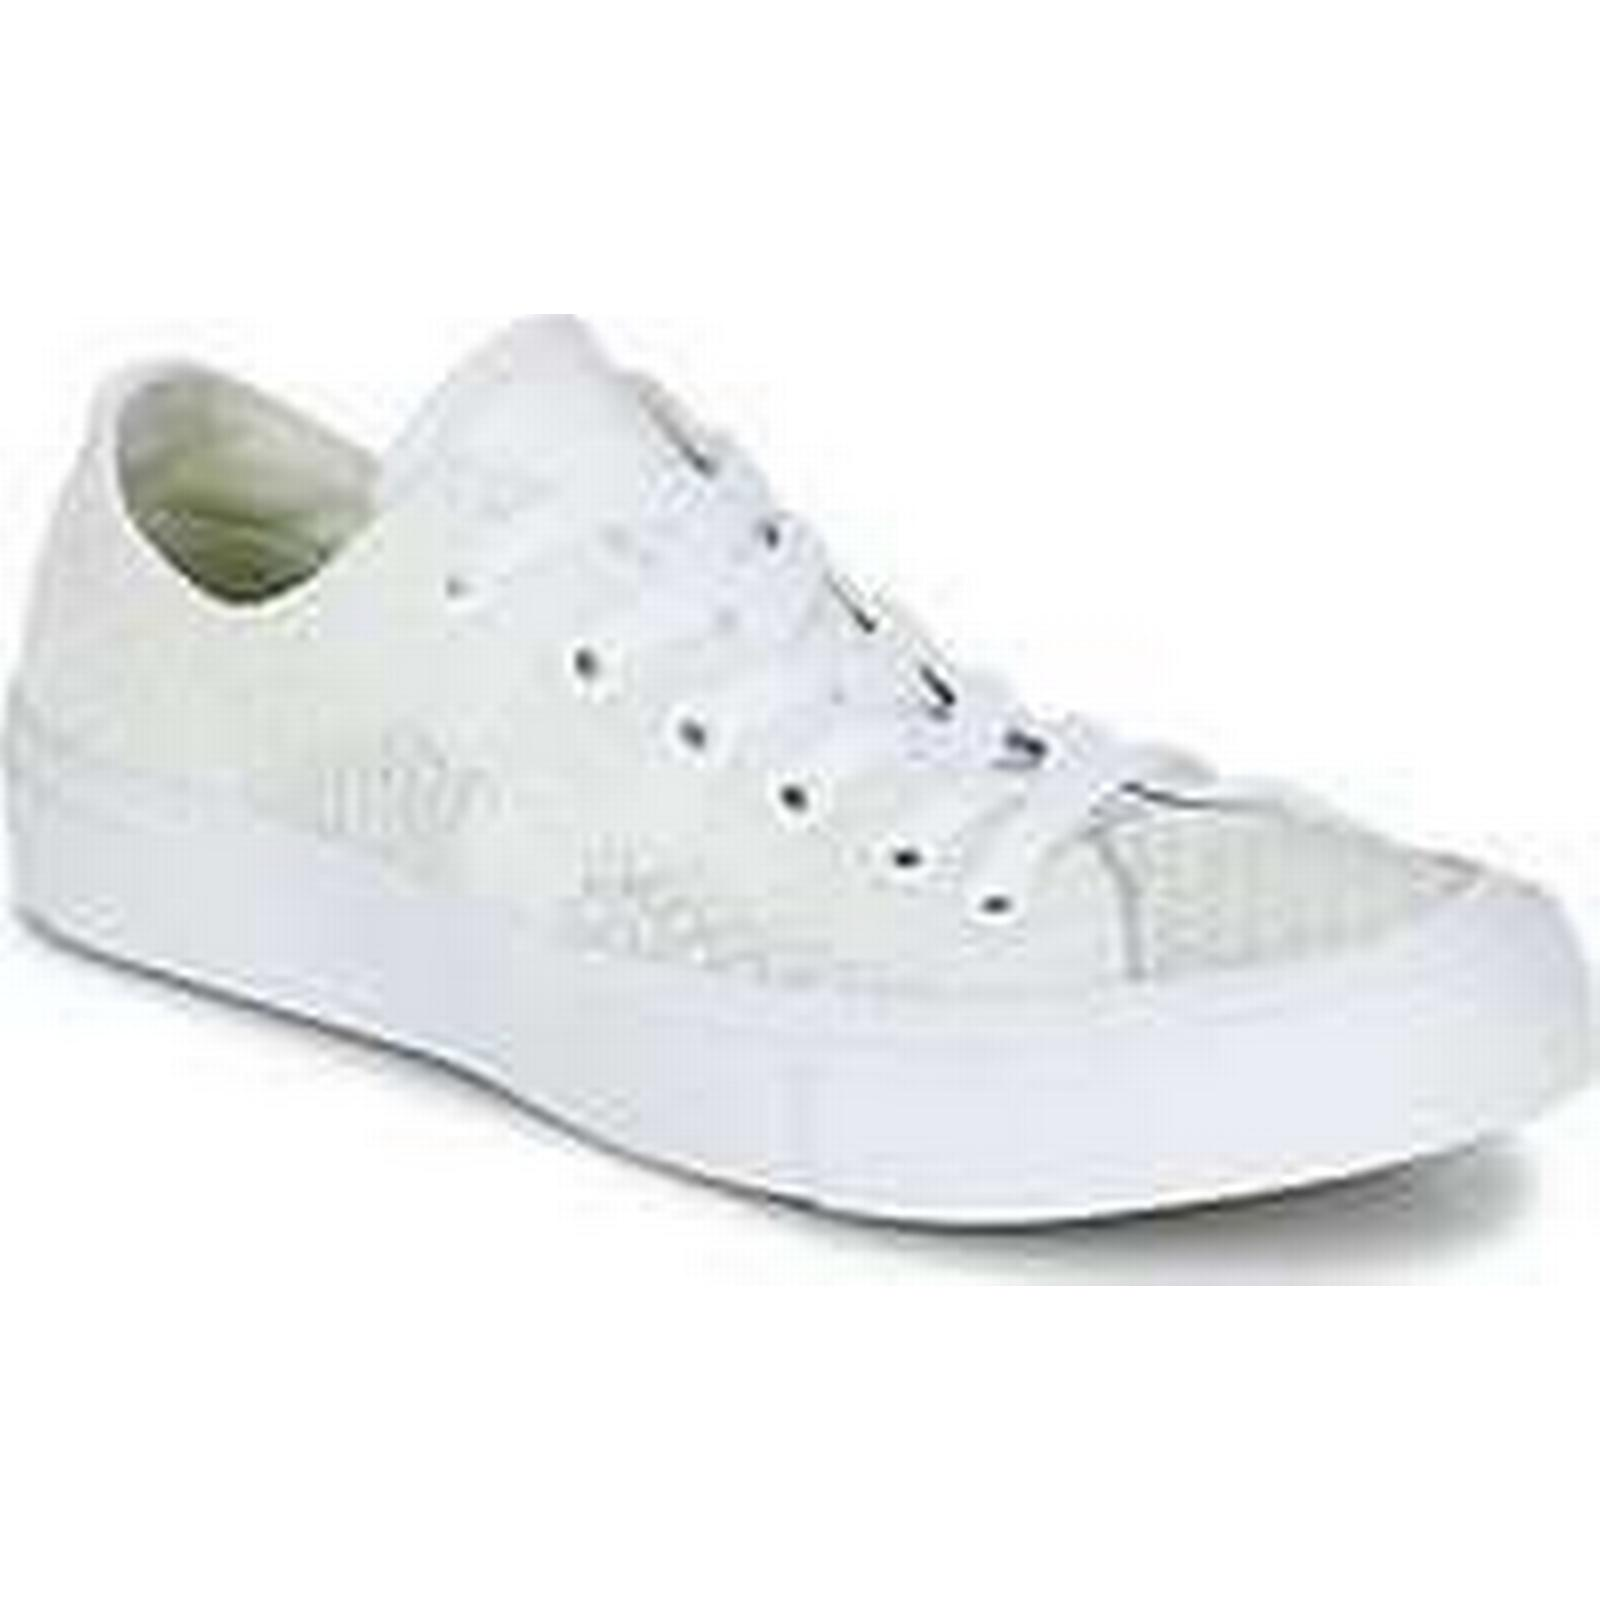 Spartoo.co.uk Converse CHUCK TAYLOR ALL KNIT STAR II FESTIVAL TPU KNIT ALL OX women's Shoes (Trainers) in White 184d95